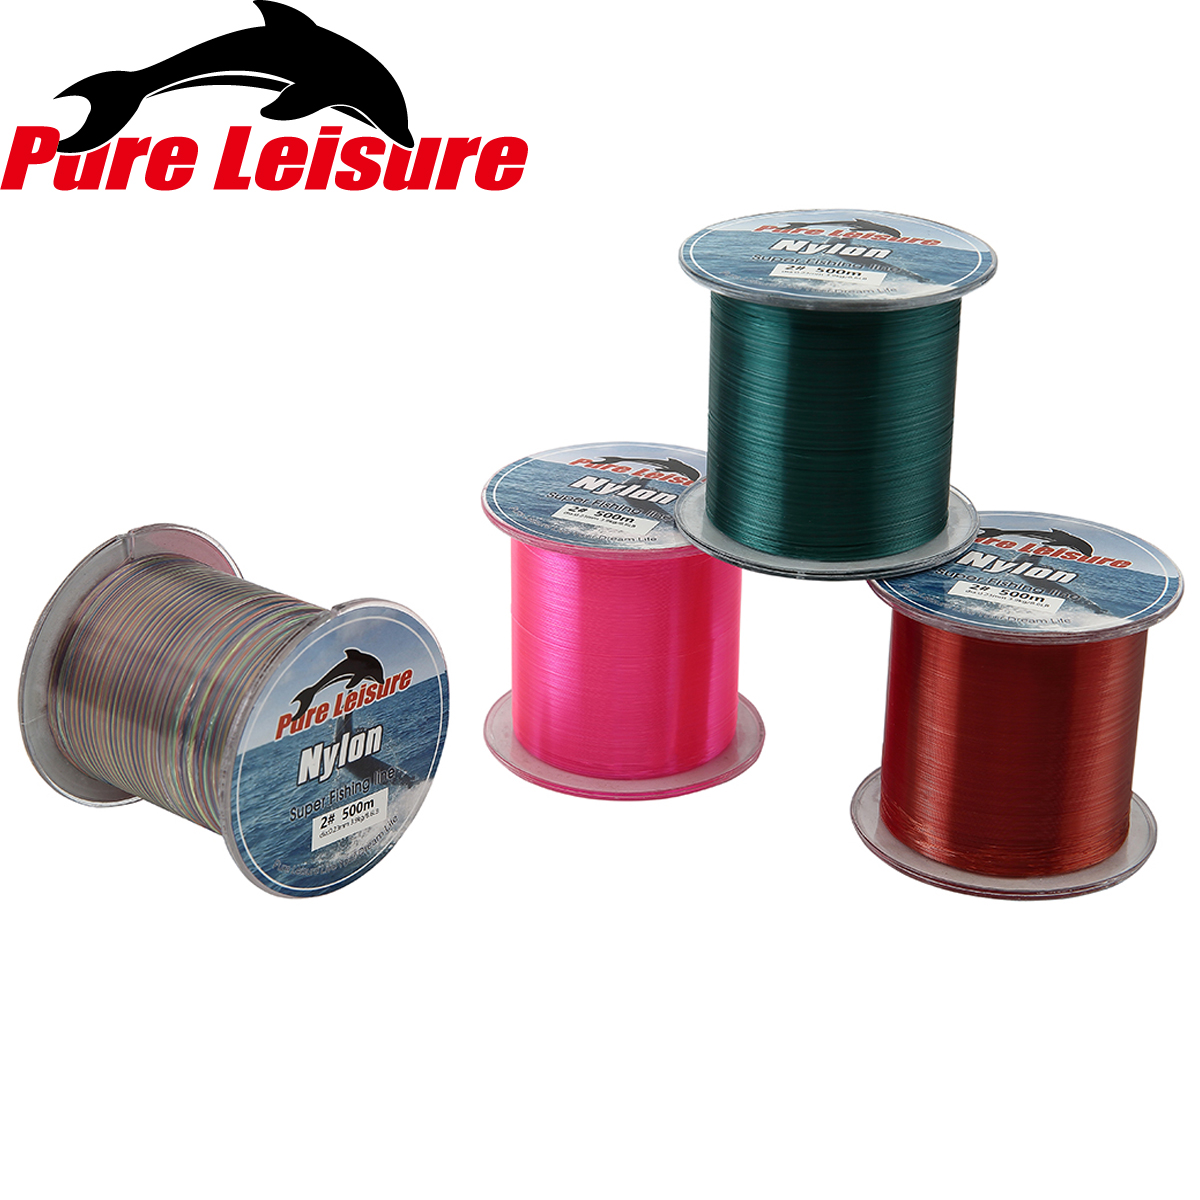 PureLeisure 500m Nylon Fishing Line 500m Filo Trecciato Pesca 4.4-28.6LB lenza pesca nylon 500m Nylon Peche for Carp Fishing